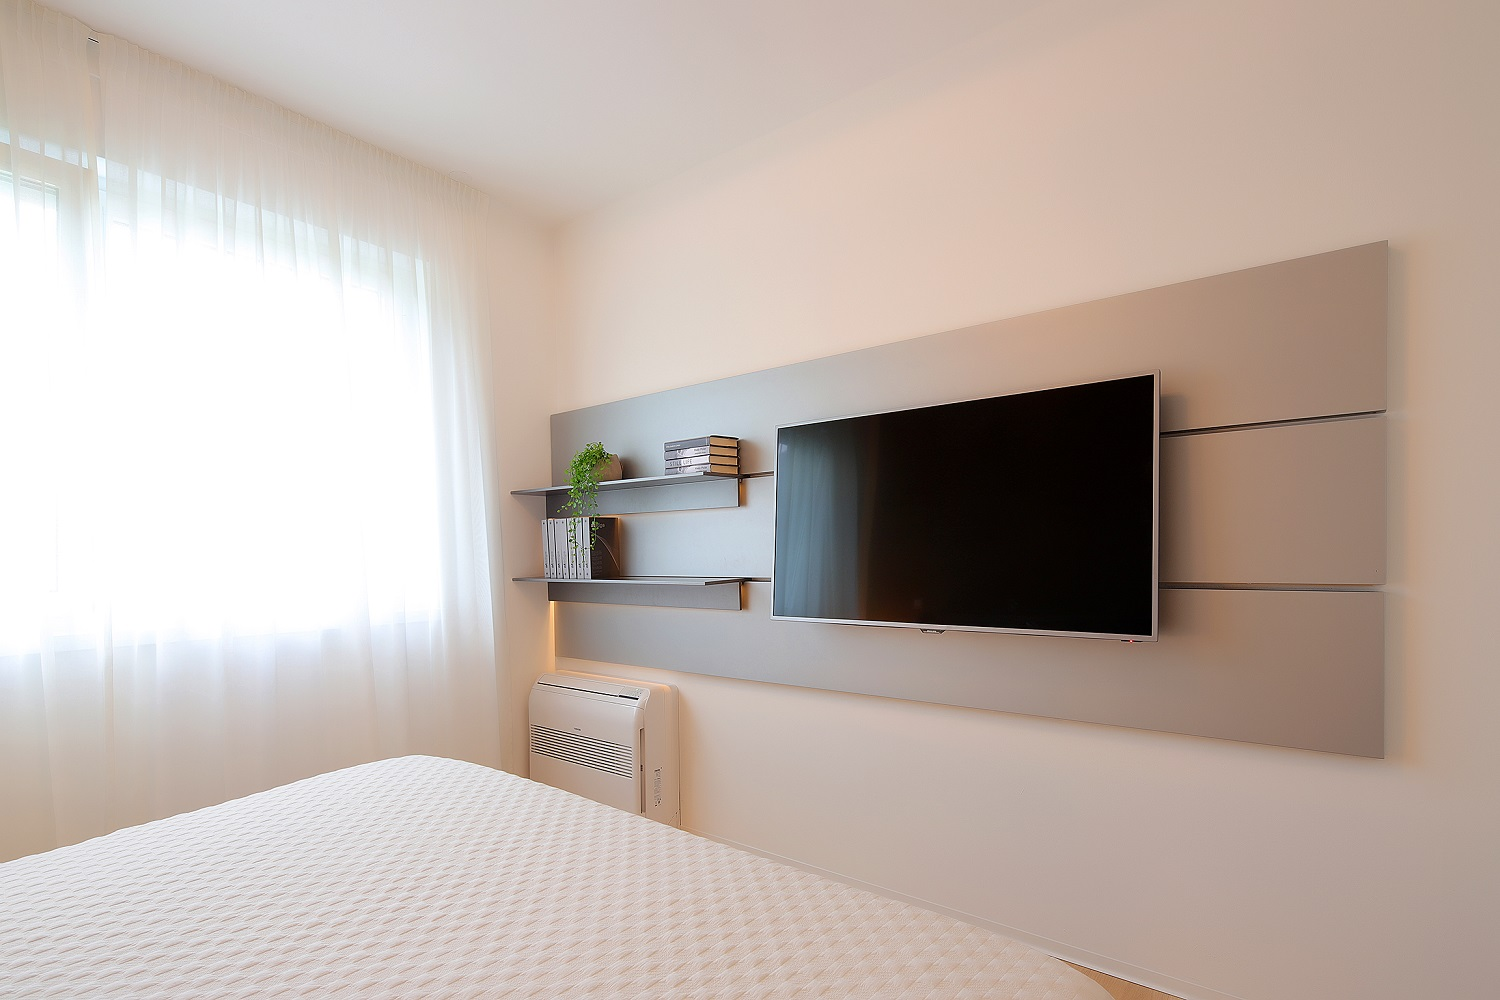 S2a - bedroom - TV